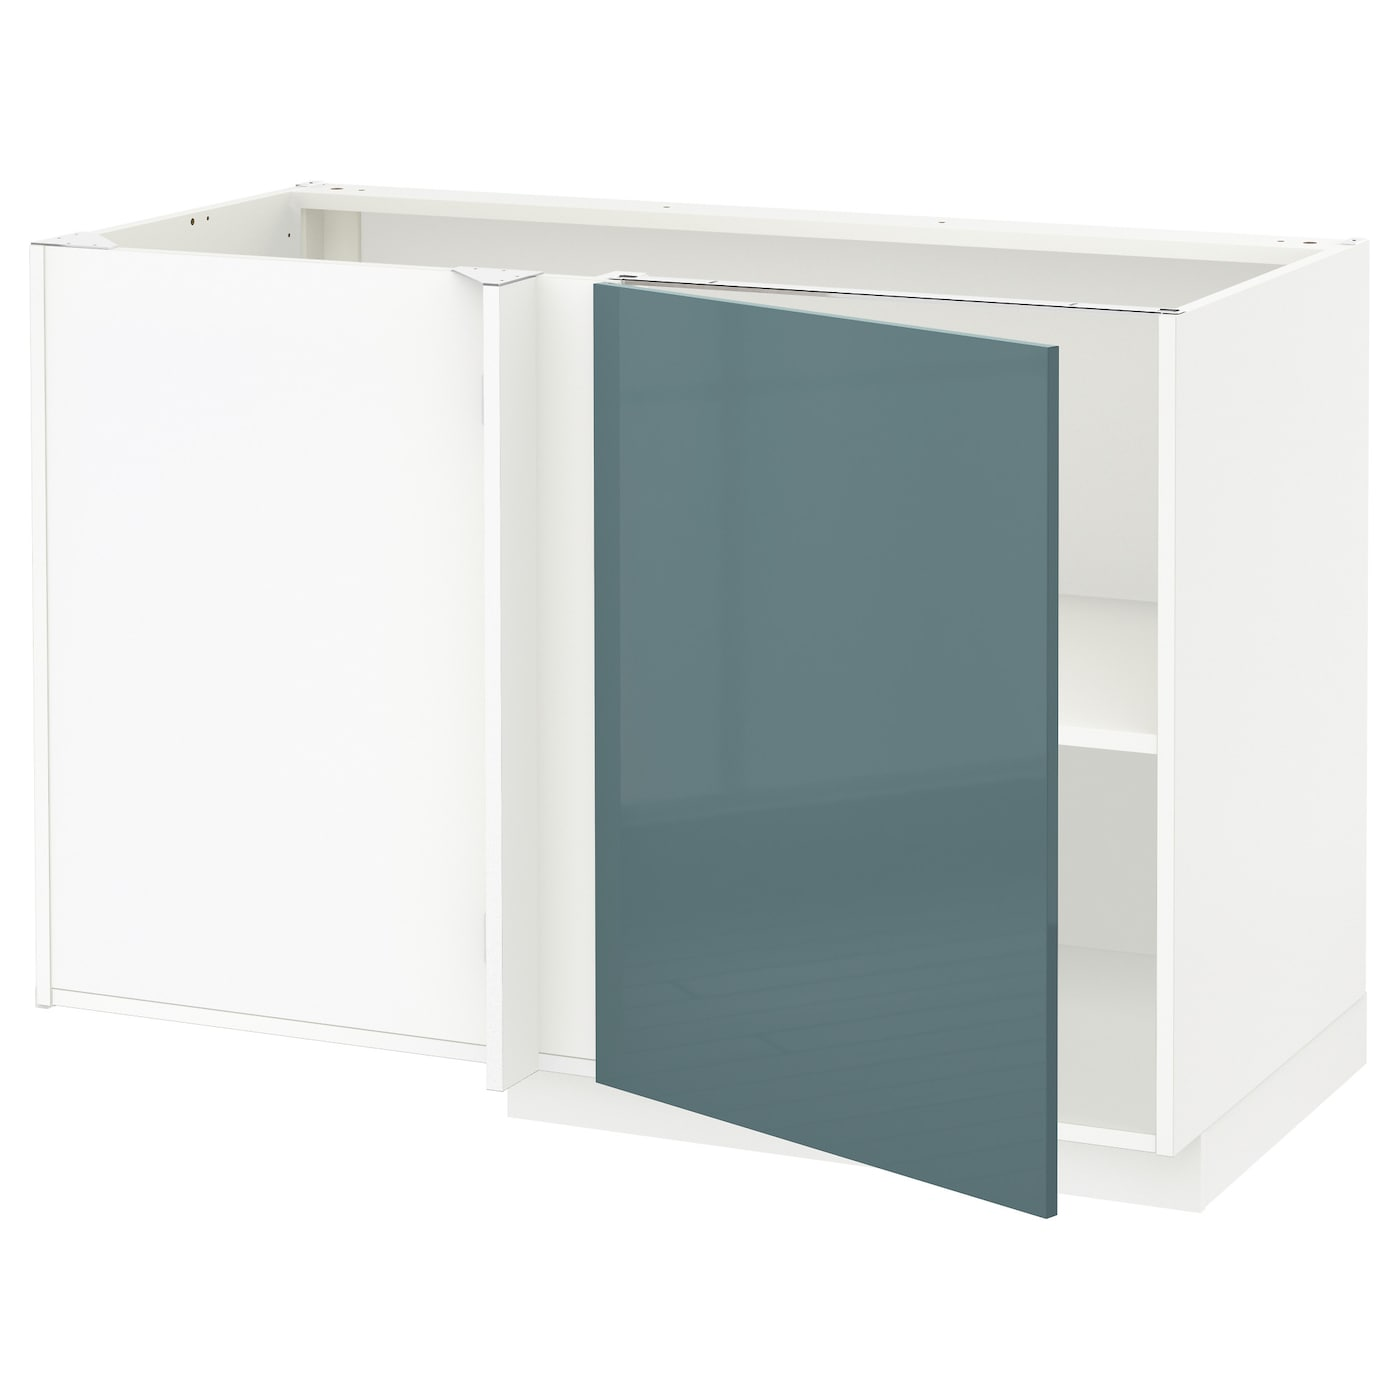 metod corner base cabinet with shelf white kallarp grey turquoise 128 x 68 cm ikea. Black Bedroom Furniture Sets. Home Design Ideas